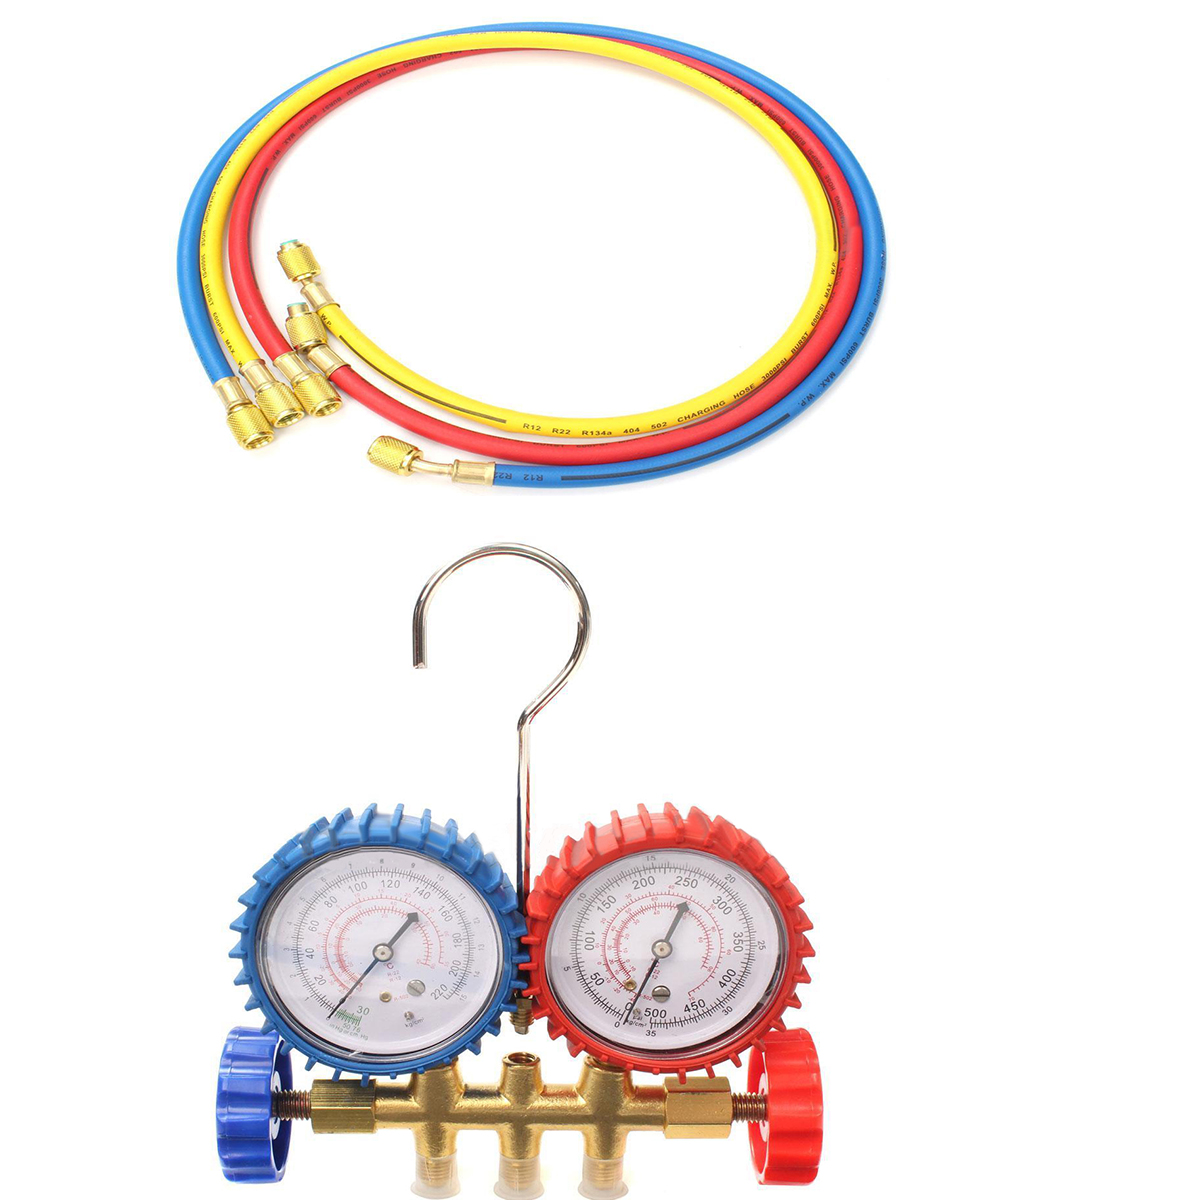 Mayitr Refrigeration Manifold Gauge Set with 85cm Charging Hose For R134A R12 R22 R404z Air Condition r22 r410 r407c r404a r134a air conditioner refrigeration single manifold vacuum gauge pressure gauge tool